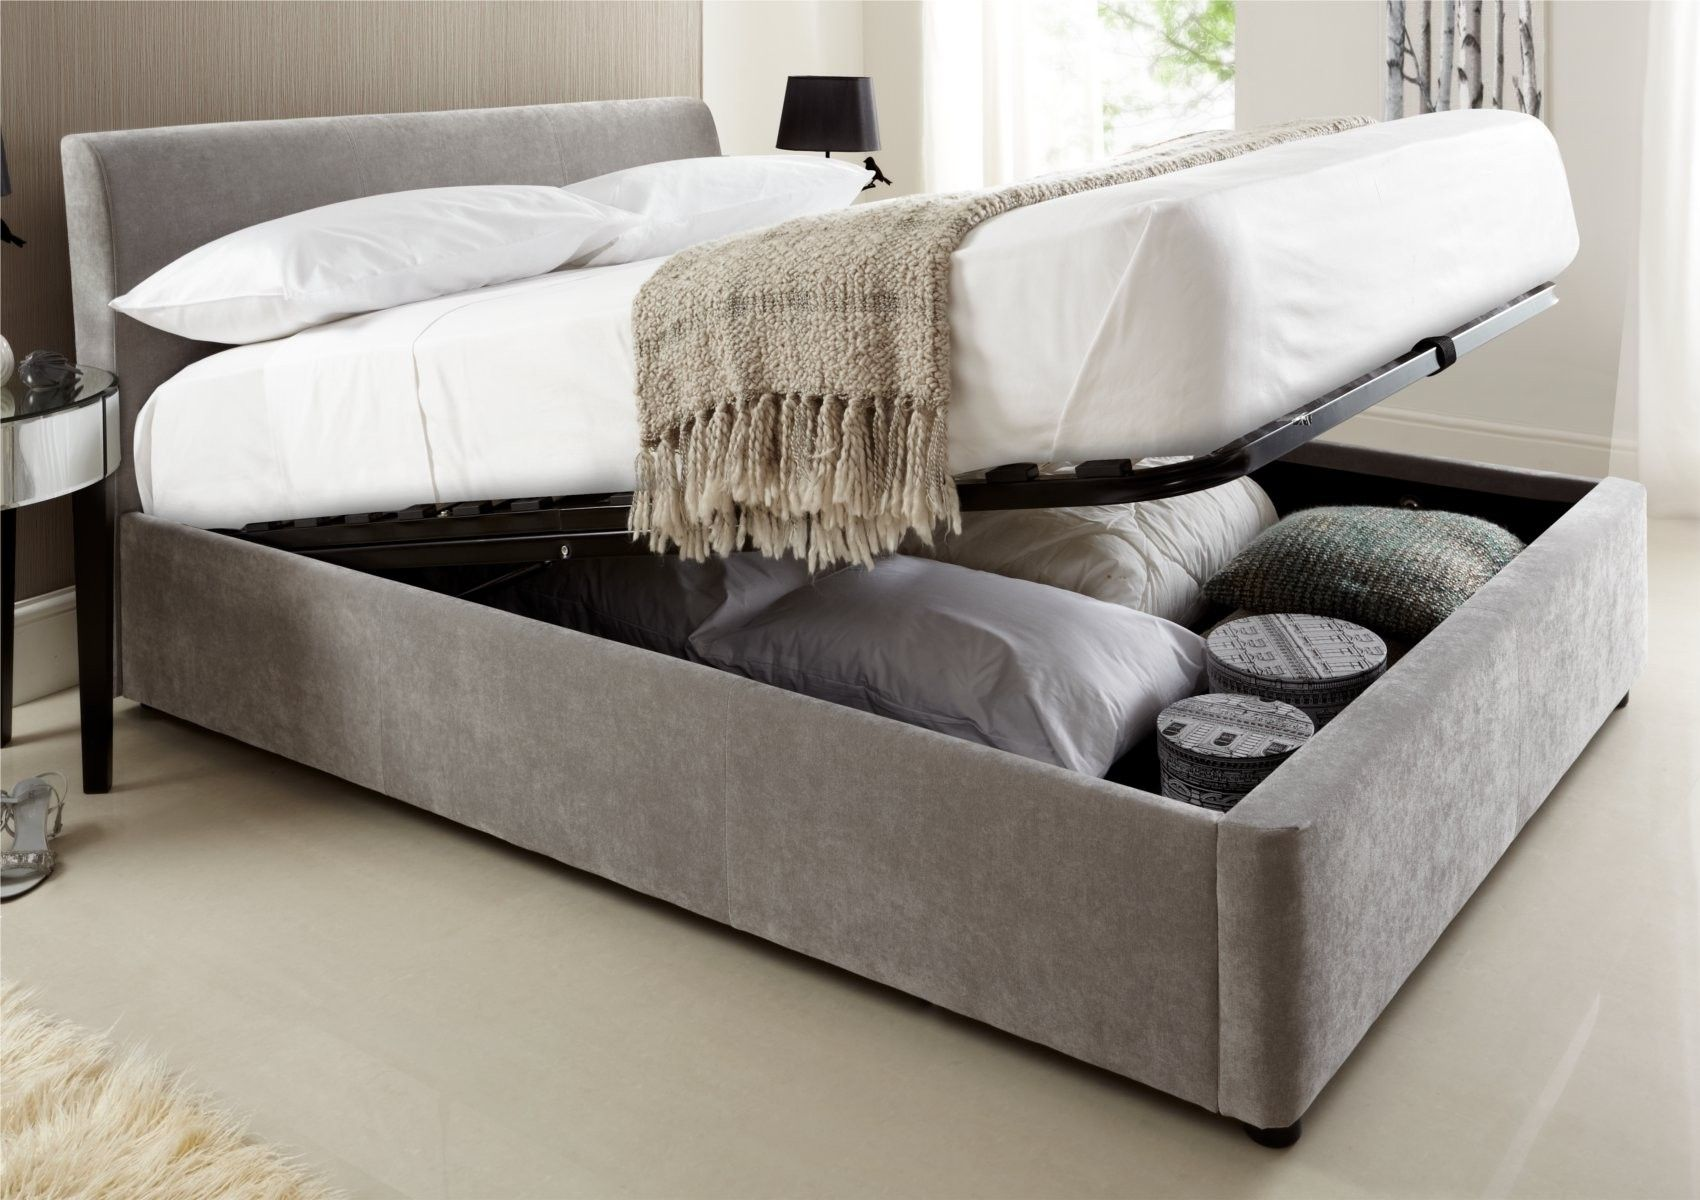 Stupendous Serenity Upholstered Ottoman Storage Bed Steel Grey Me Dailytribune Chair Design For Home Dailytribuneorg